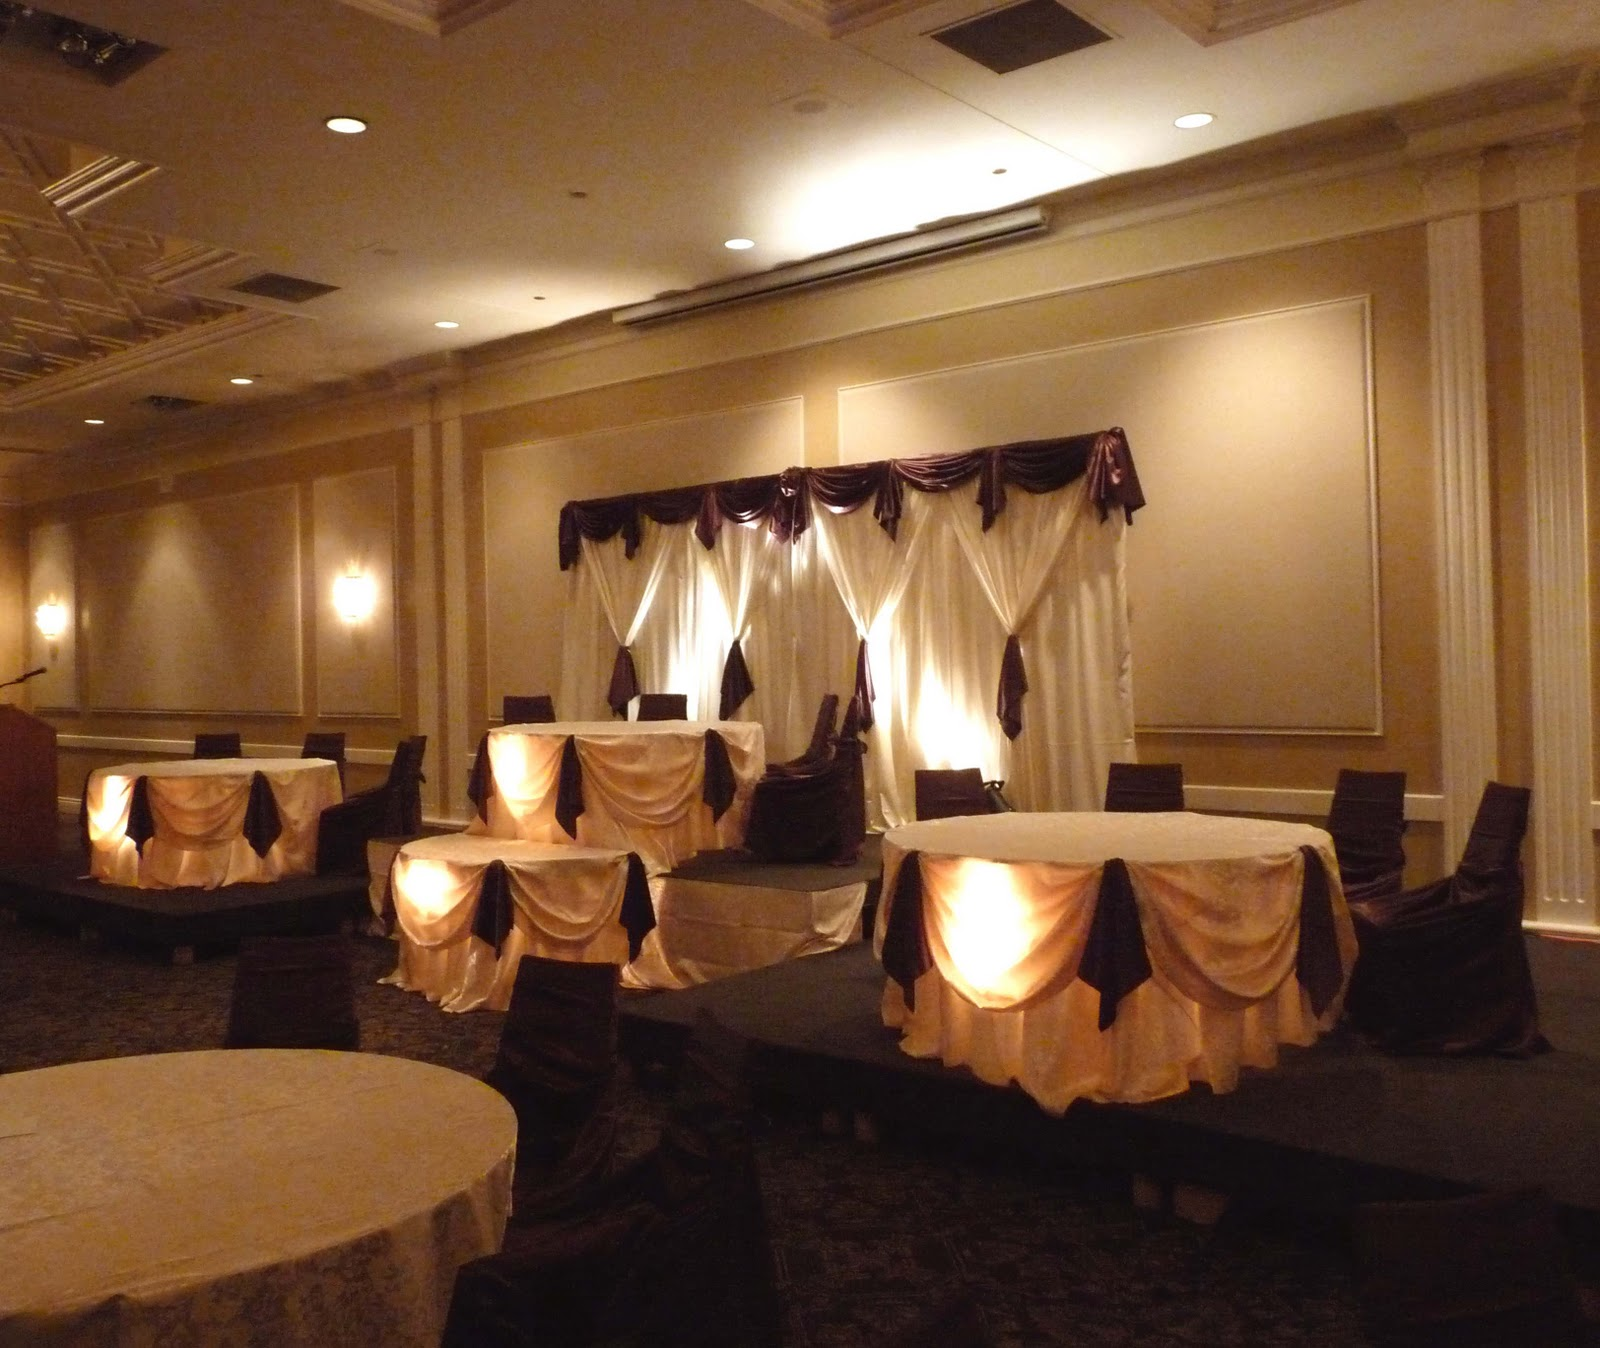 Decor rent toronto chair cover and wedding decorations 2011 wedding decorations chair covers and linens by httpdecor rent chocolate satin and soft gold brocade at le park banquet hall junglespirit